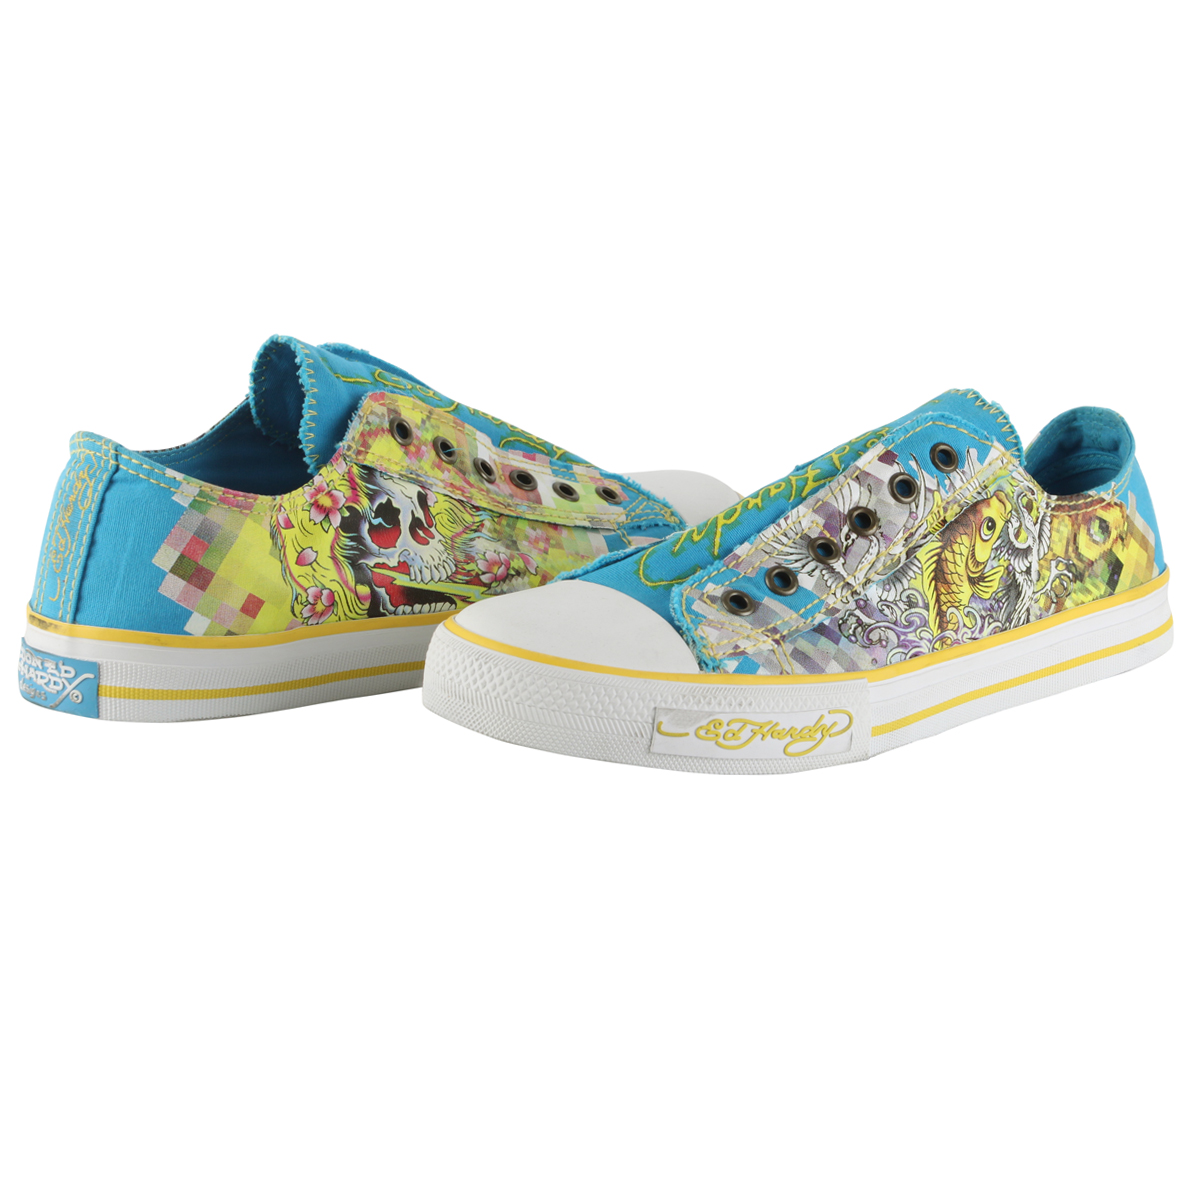 Ed Hardy Lowrise Oz Shoe for Men - Blue